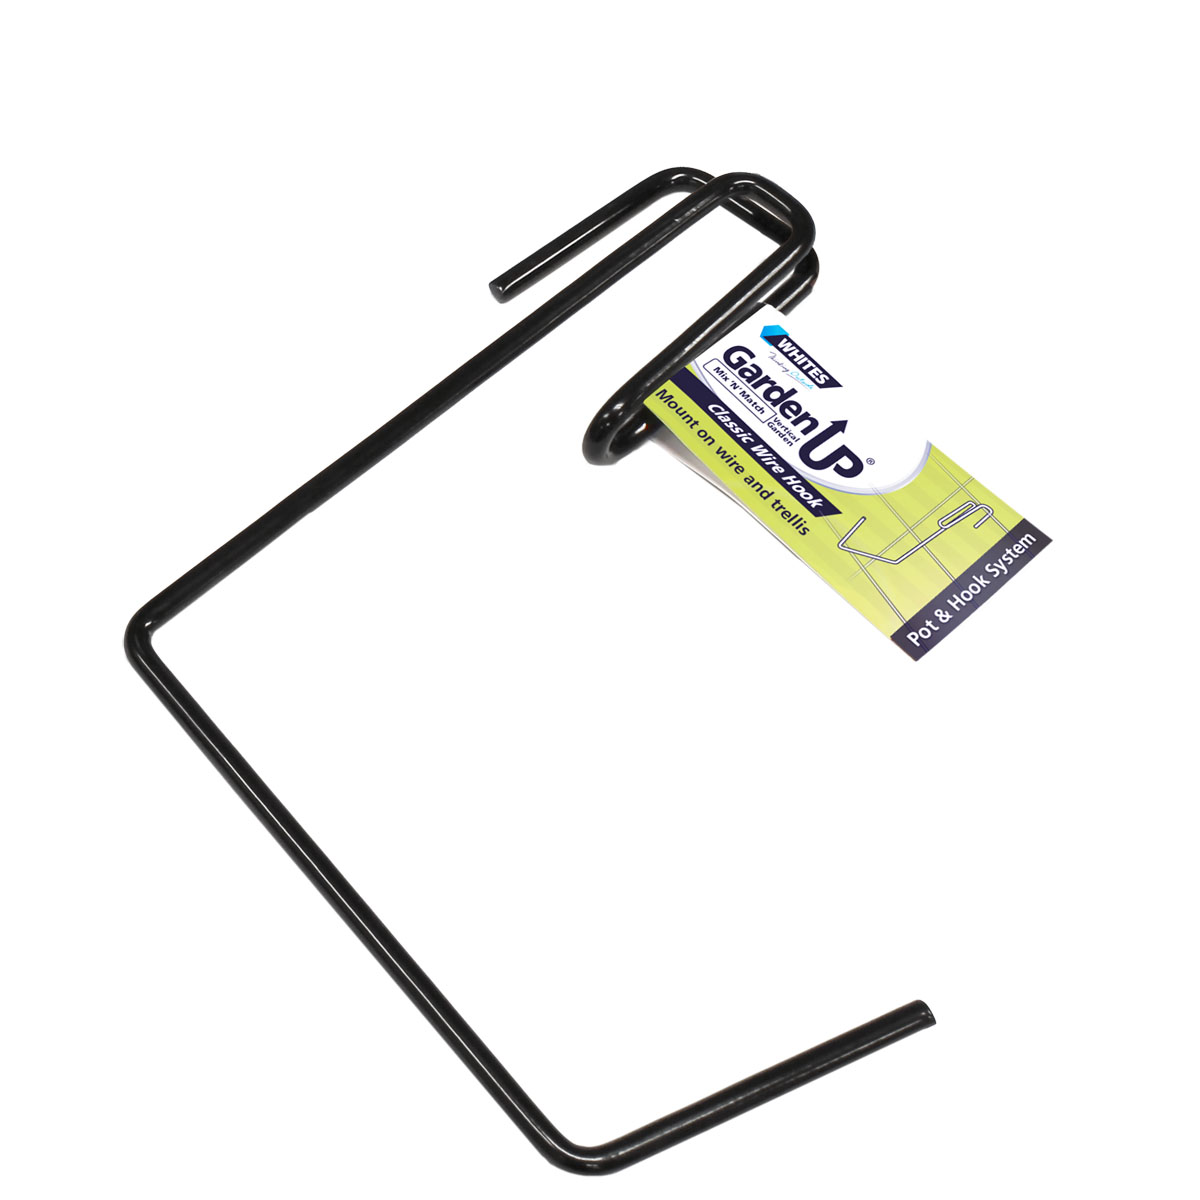 18082 Garden Up Classic Wire Hook